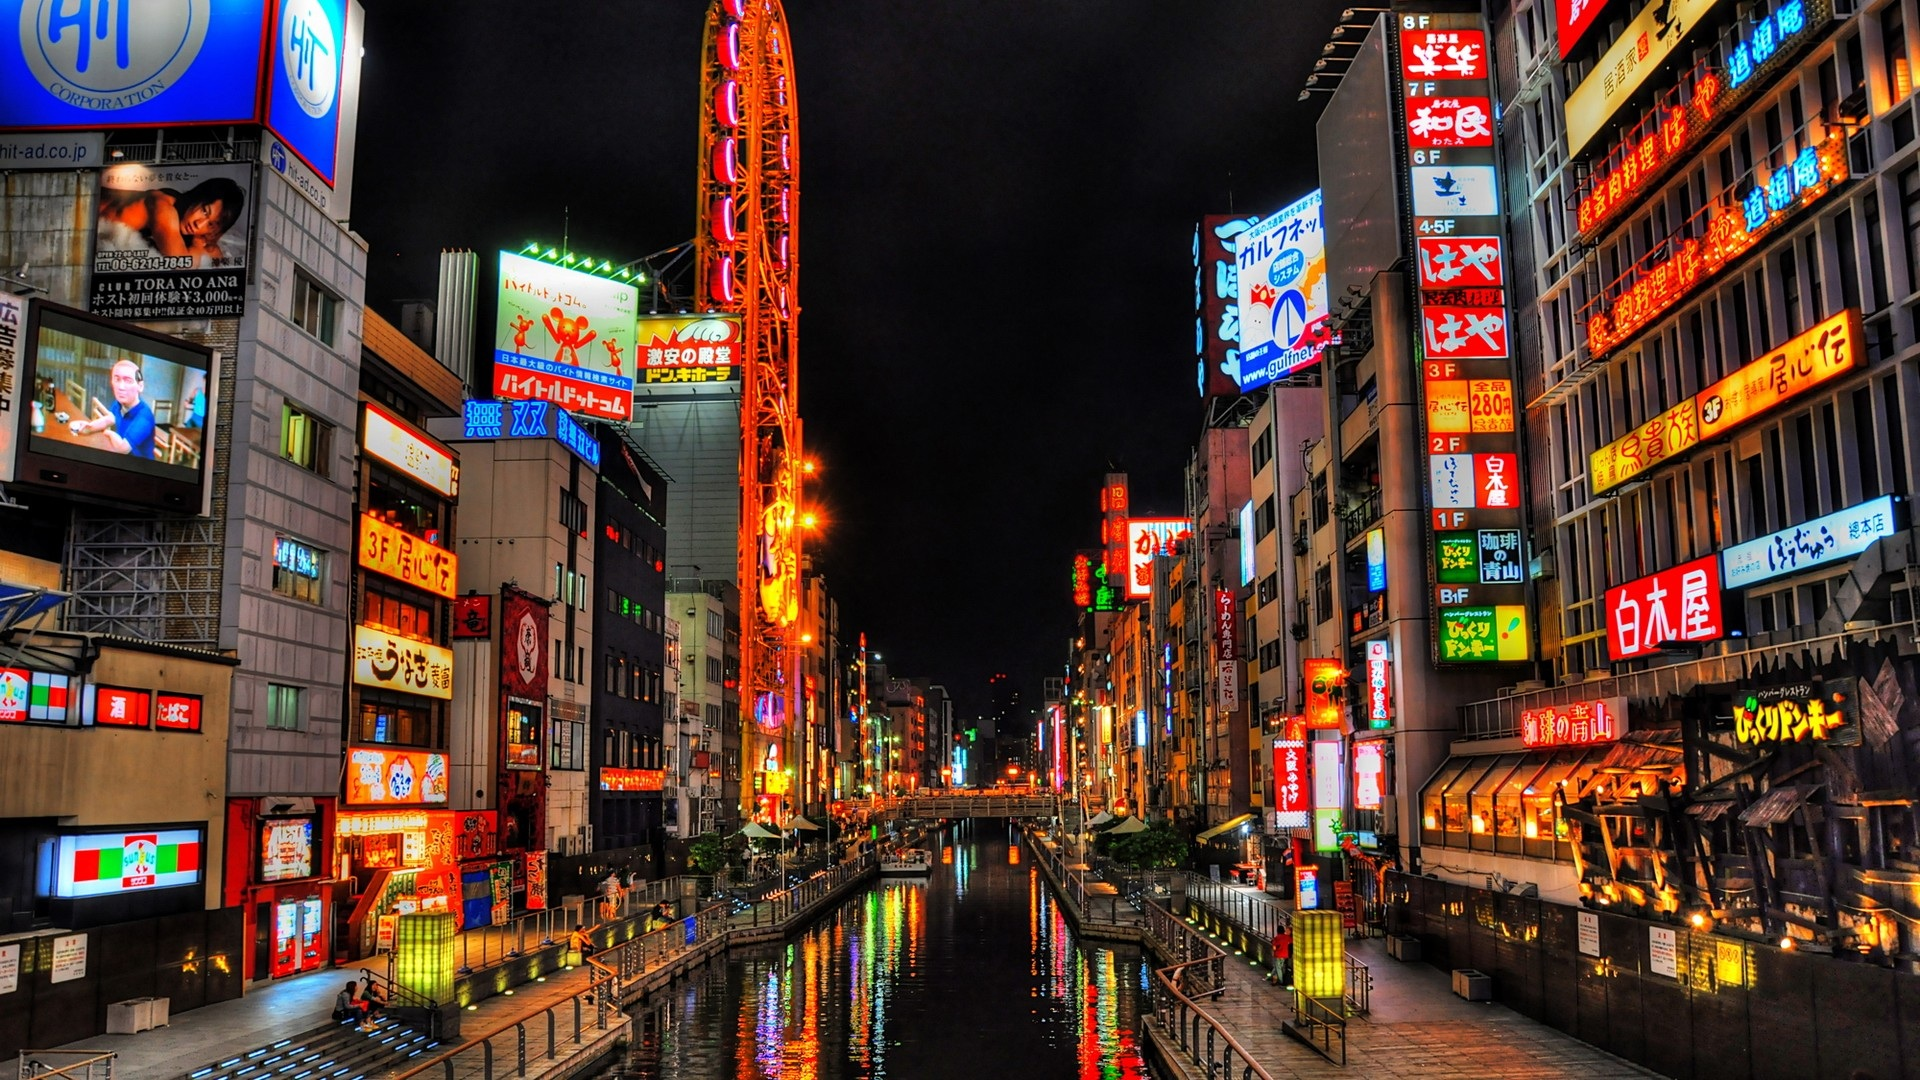 rate select rating give osaka cityscape japan 1 5 give osaka cityscape 1920x1080